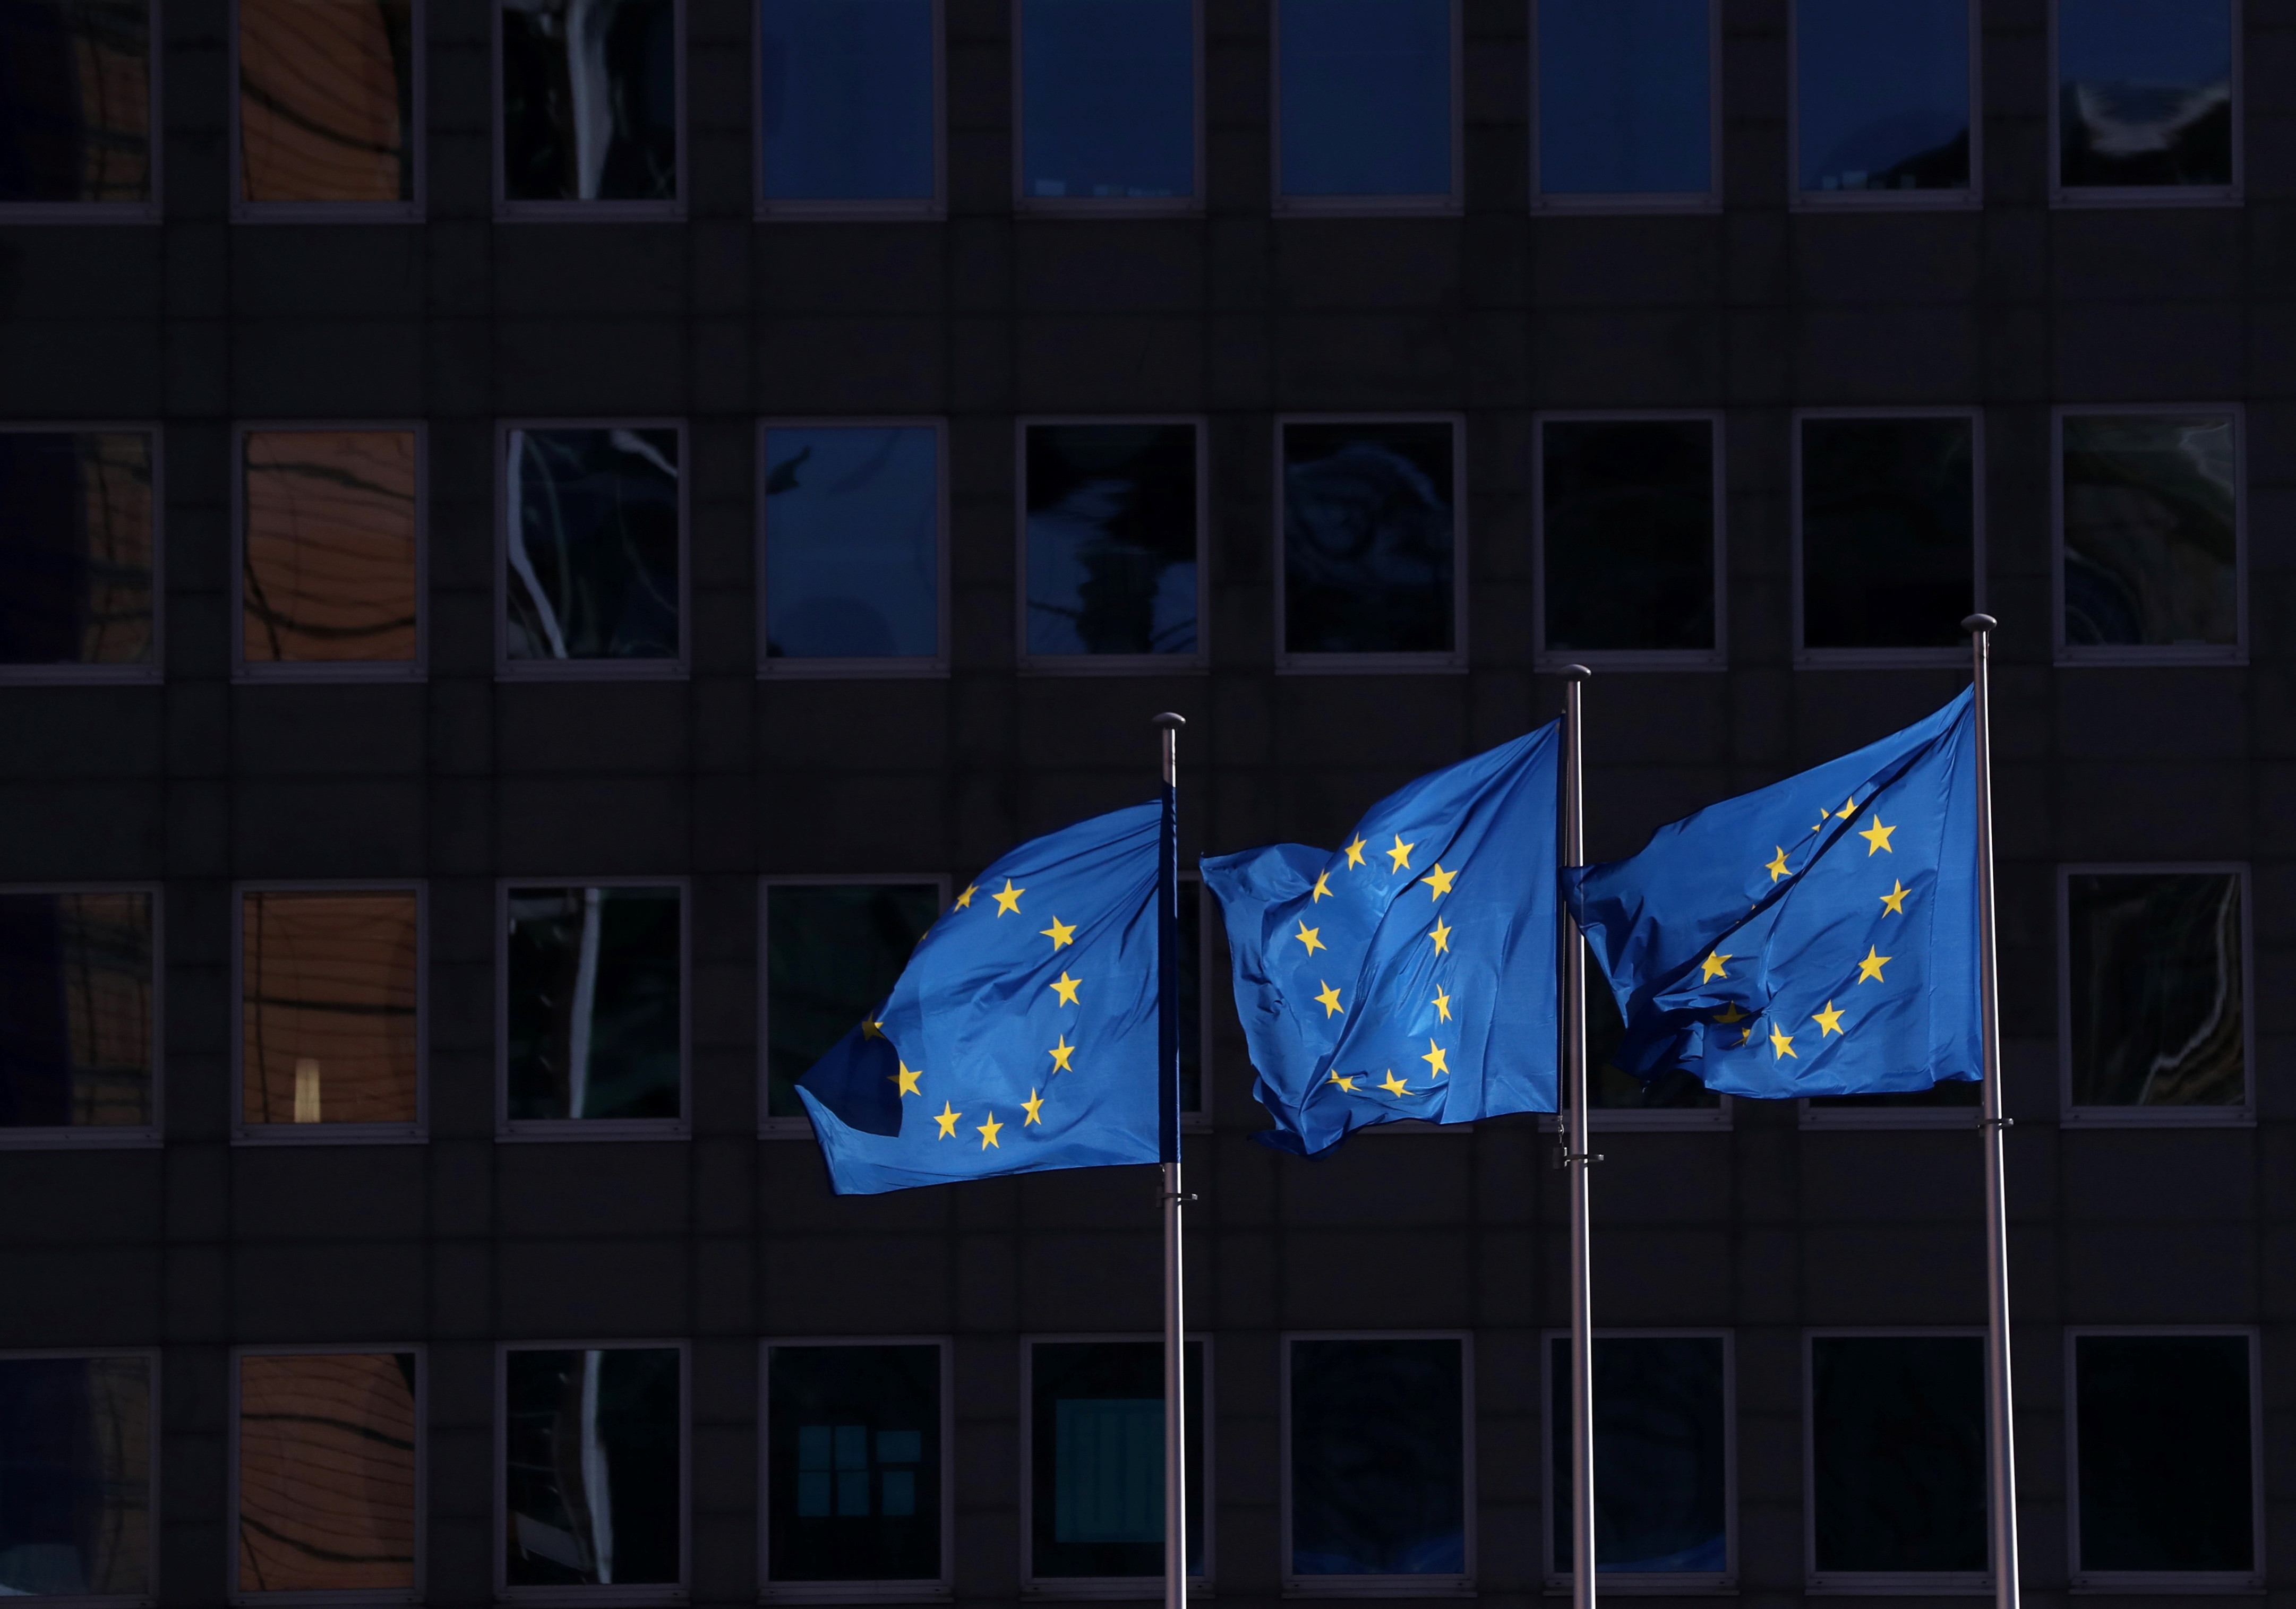 European Union flags fly outside the European Commission headquarters in Brussels, Belgium, February 19, 2020.